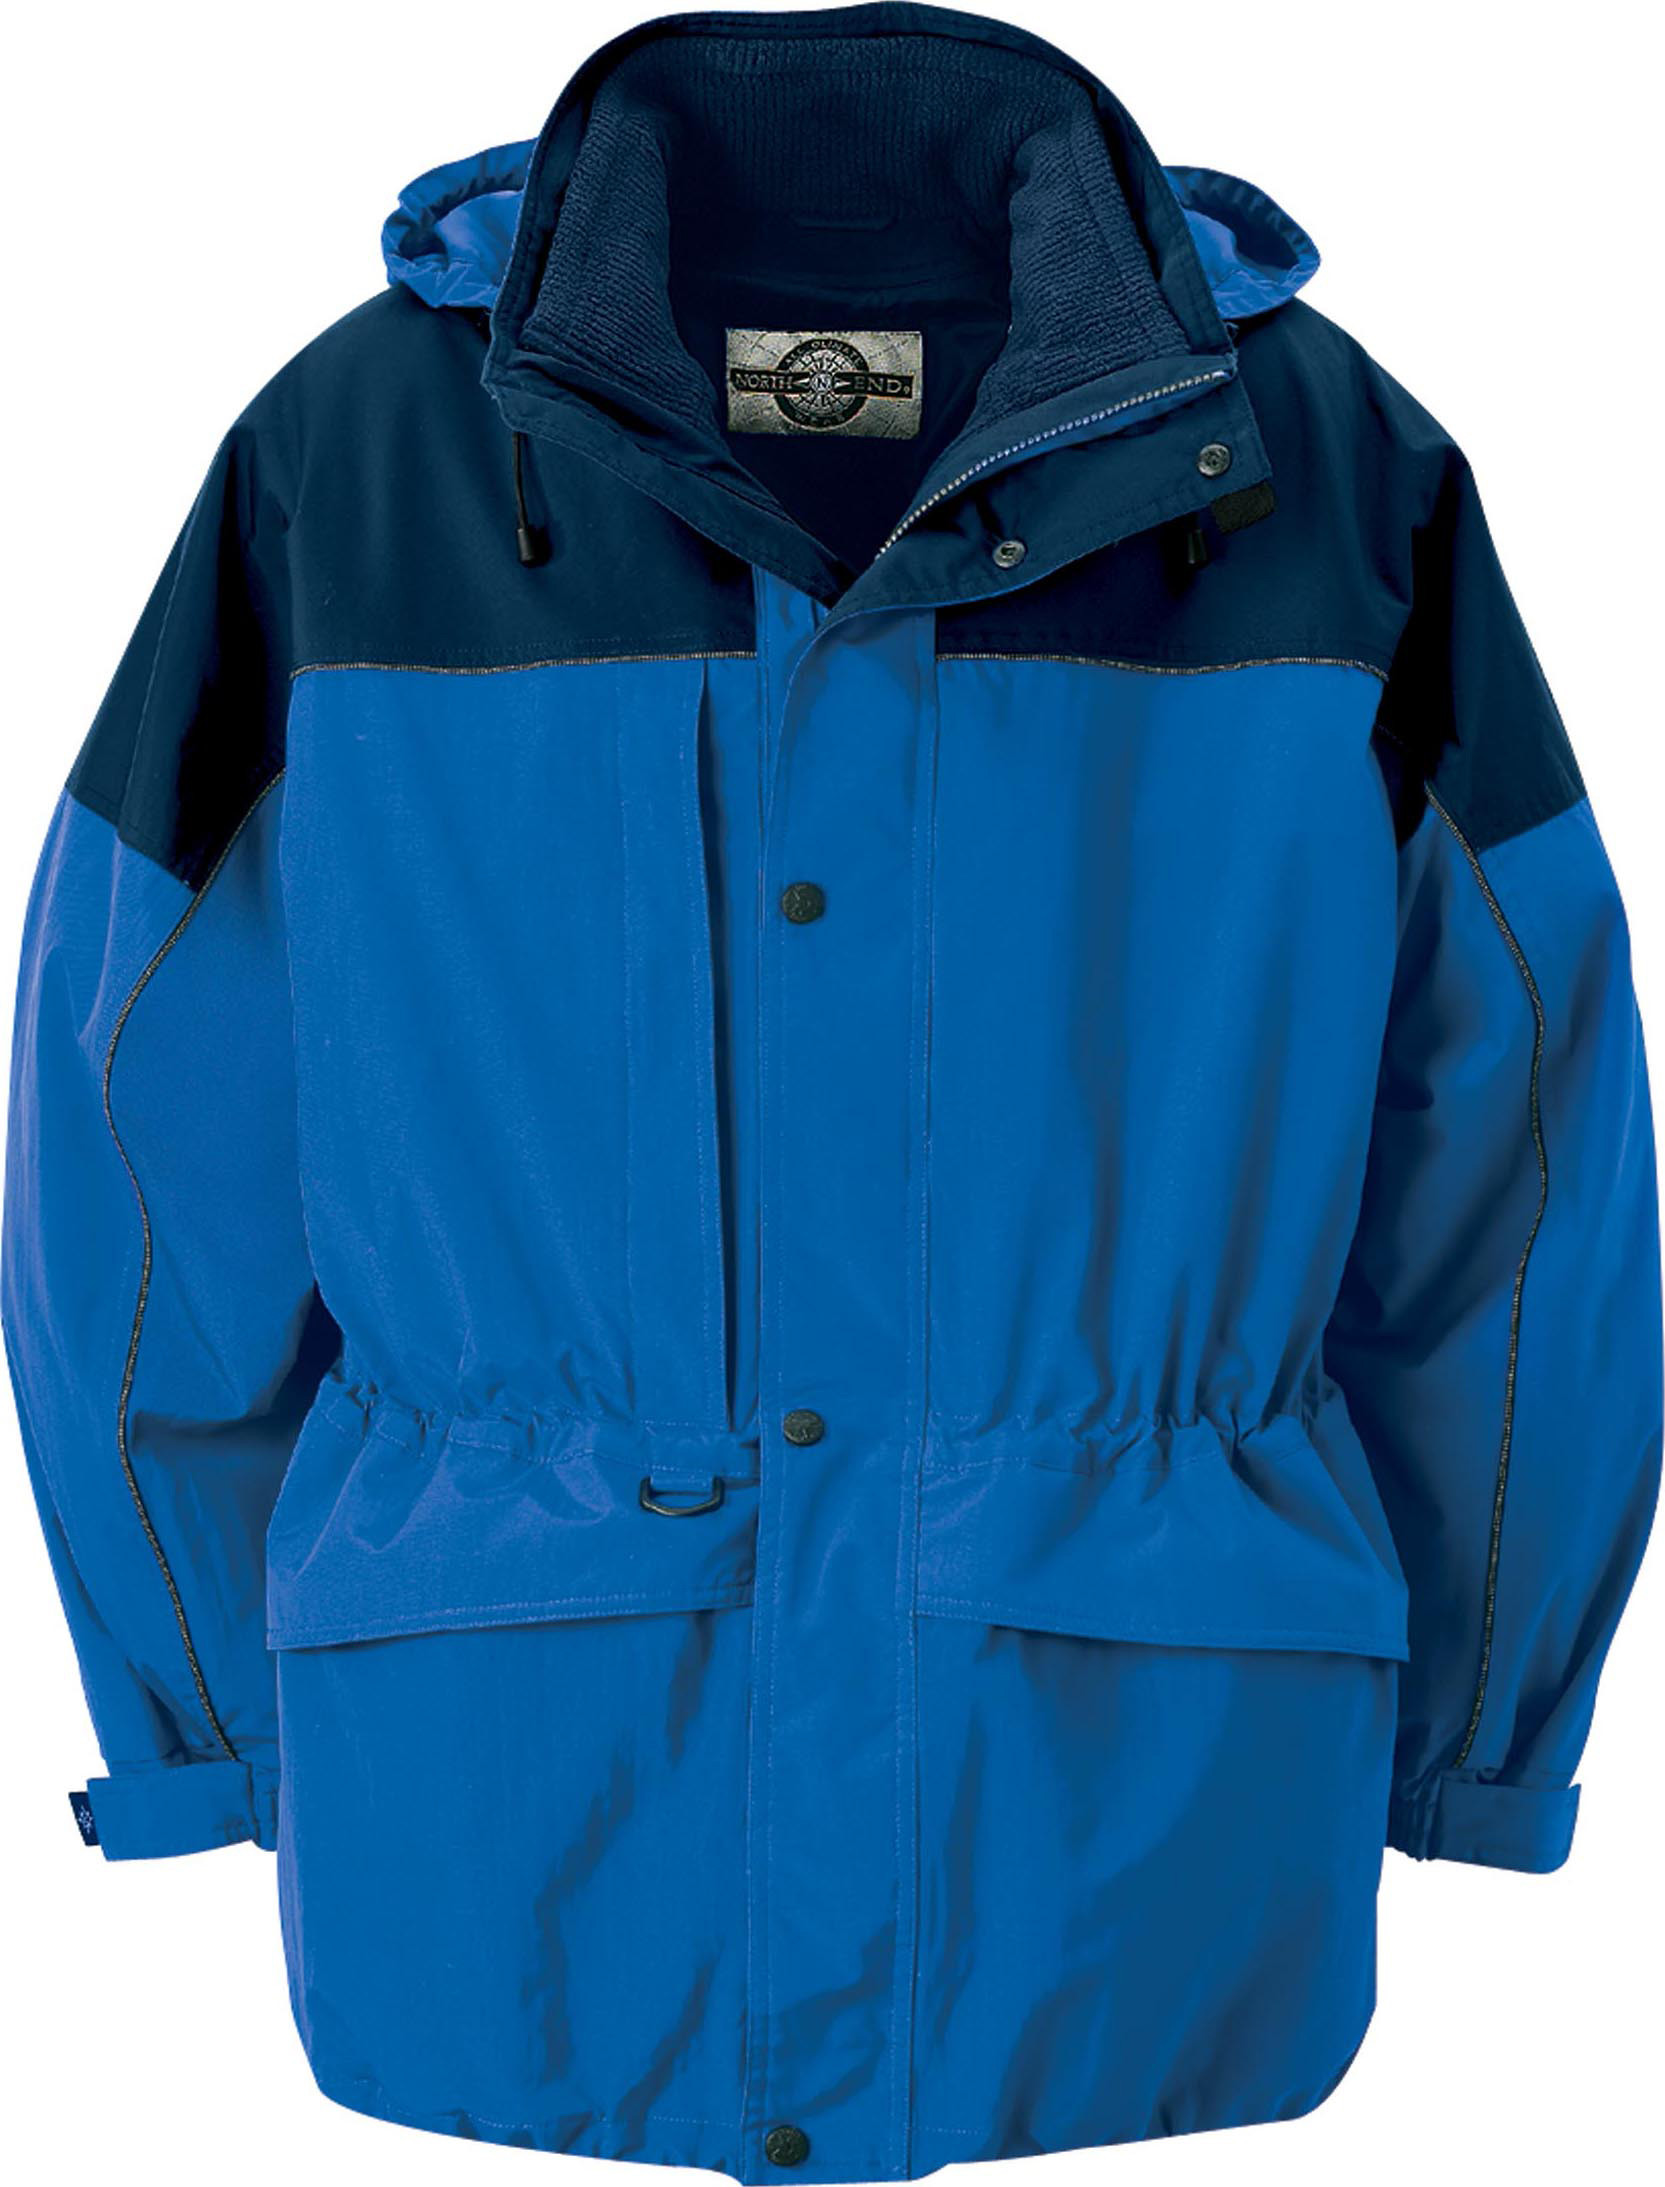 Ash City UTK 3 Warm.Logik 88006 - Men's 3-In-1 Two-Tone Parka